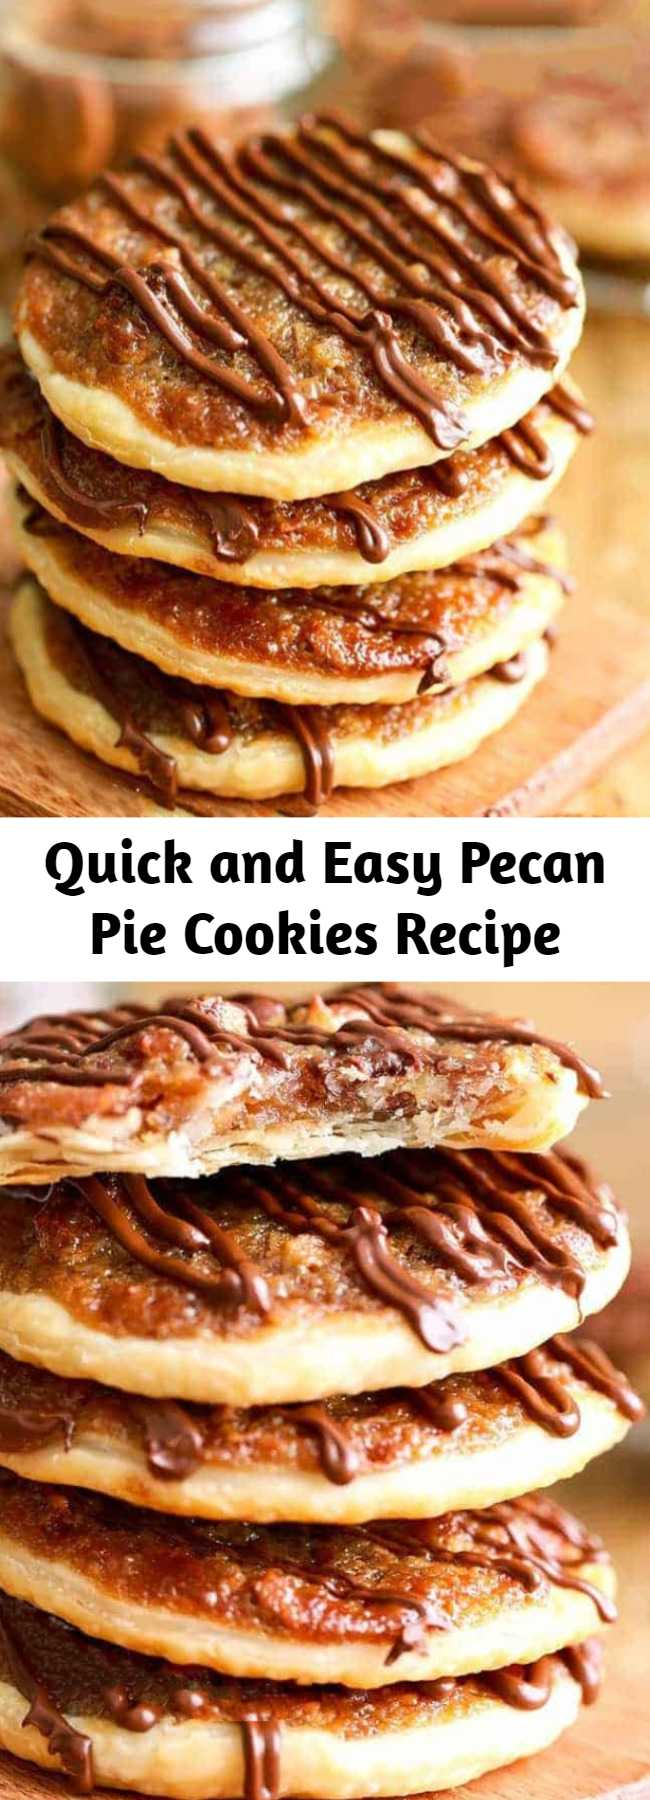 Quick and Easy Pecan Pie Cookies Recipe - Pecan Pie Cookies have a thin flaky crust with a layer of the amazing nutty caramely pecan pie filling we love so much! These are the perfect cookies for any occasion!